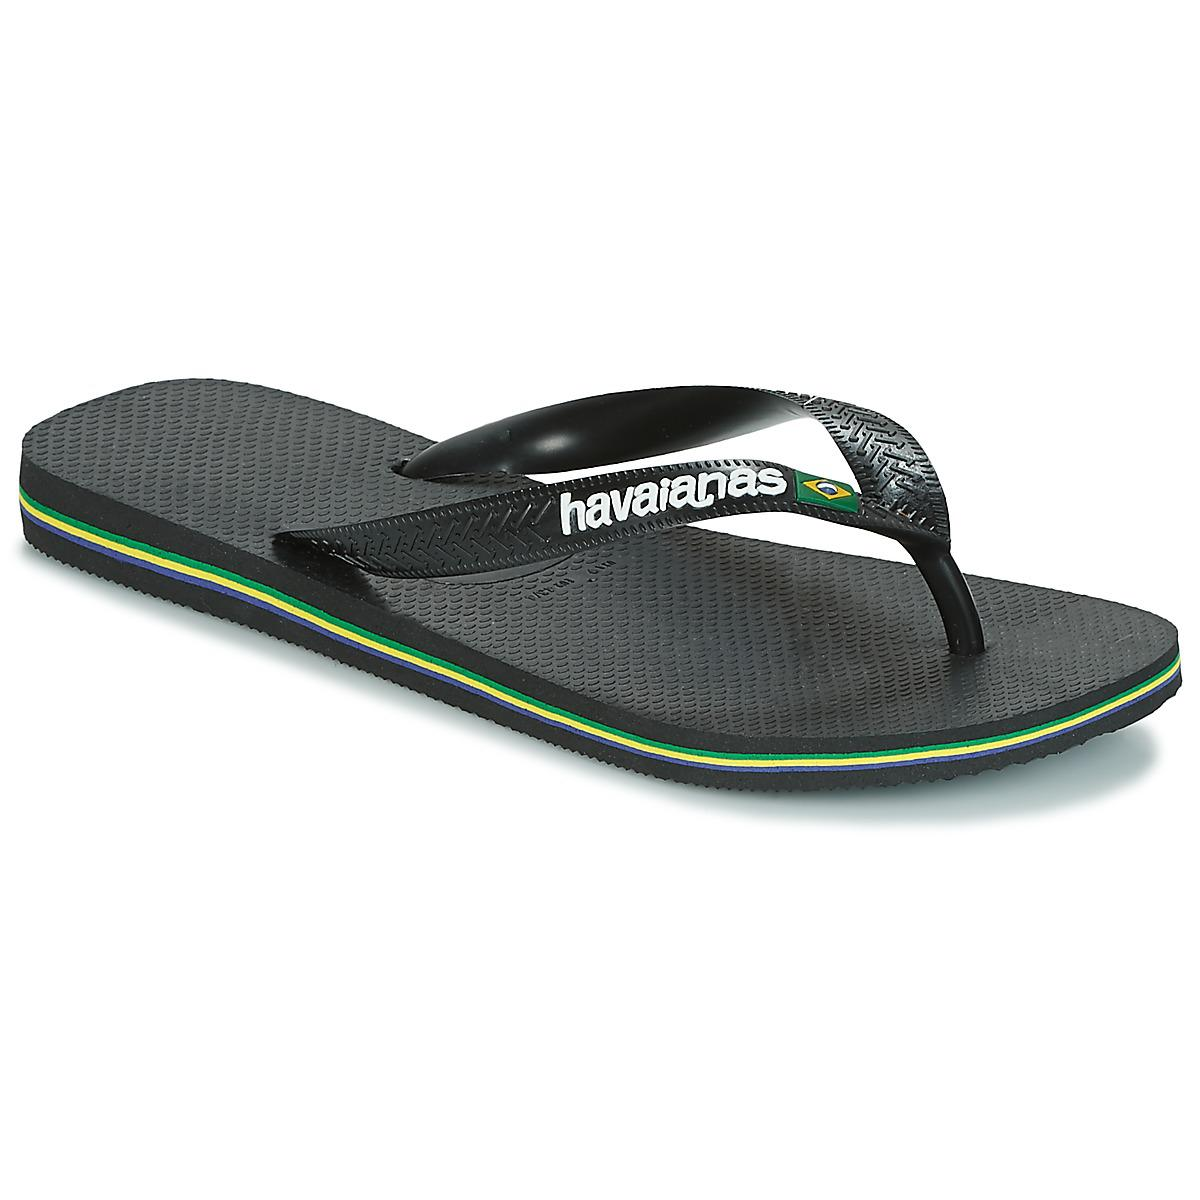 bda91a53ba9c46 Havaianas - Brazil Logo Men s Flip Flops   Sandals (shoes) In Black for Men.  View fullscreen